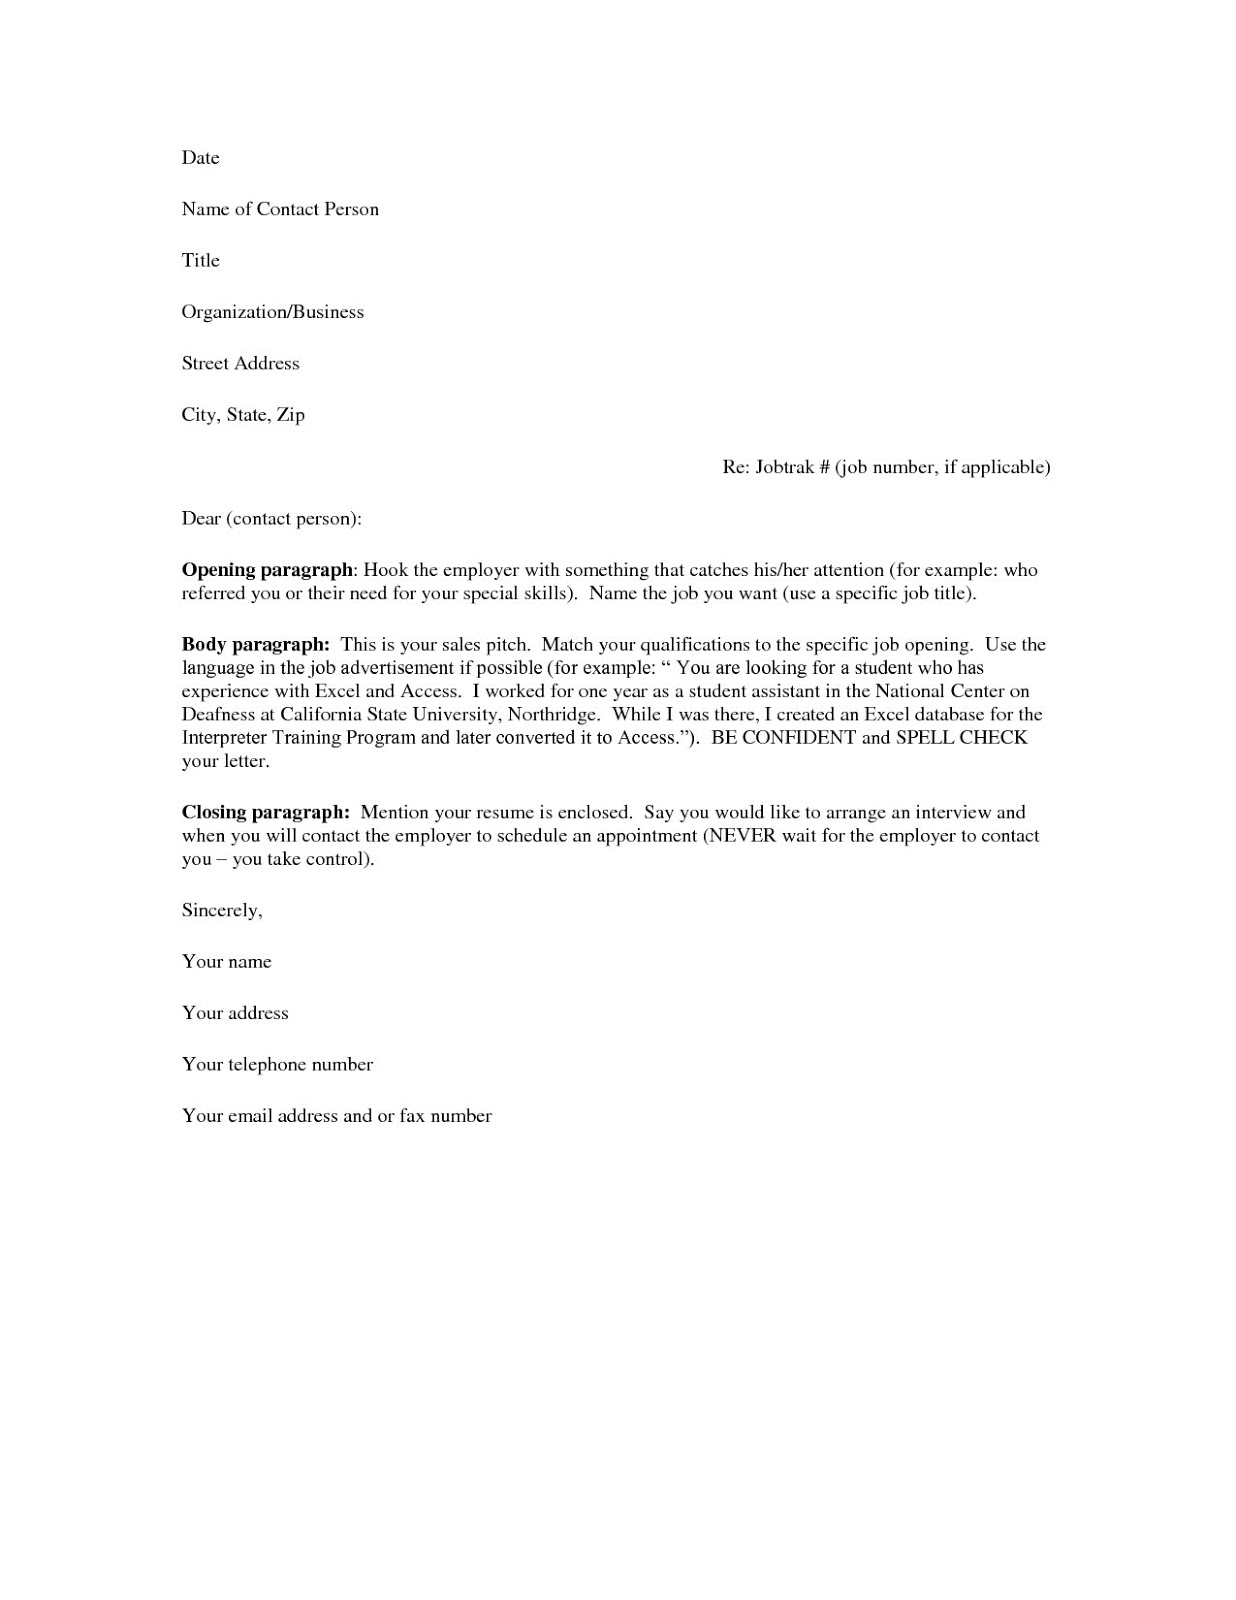 Unit 1: Written Paper - letslearndt writing the perfect cover letter ...